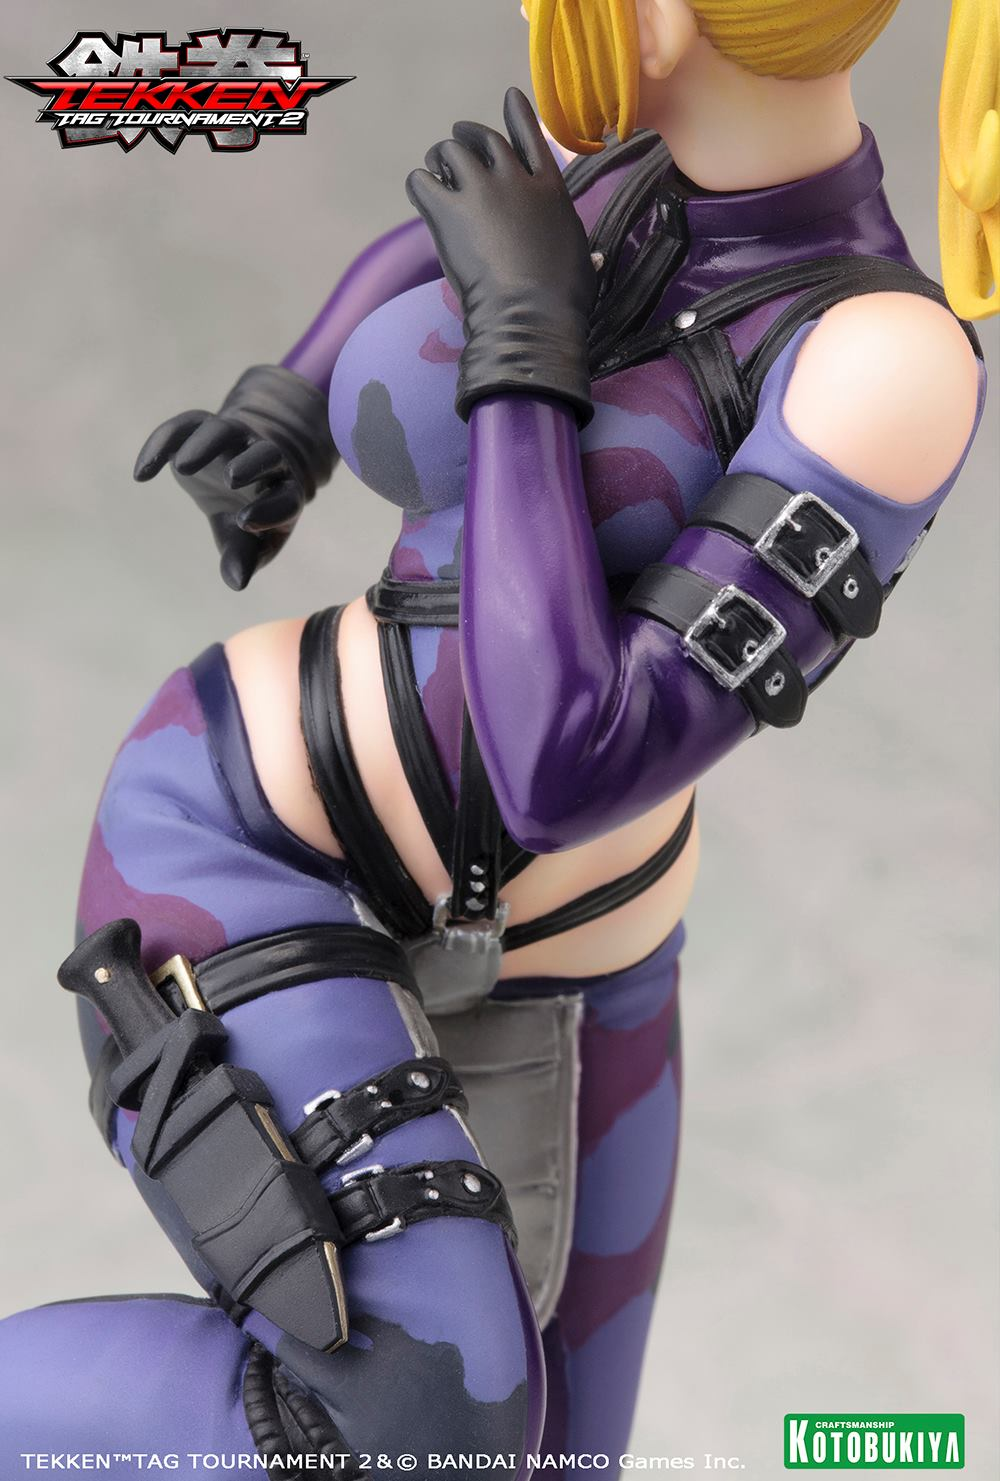 nina-williams-tekken-tournament-2-bishoujo-statue-7